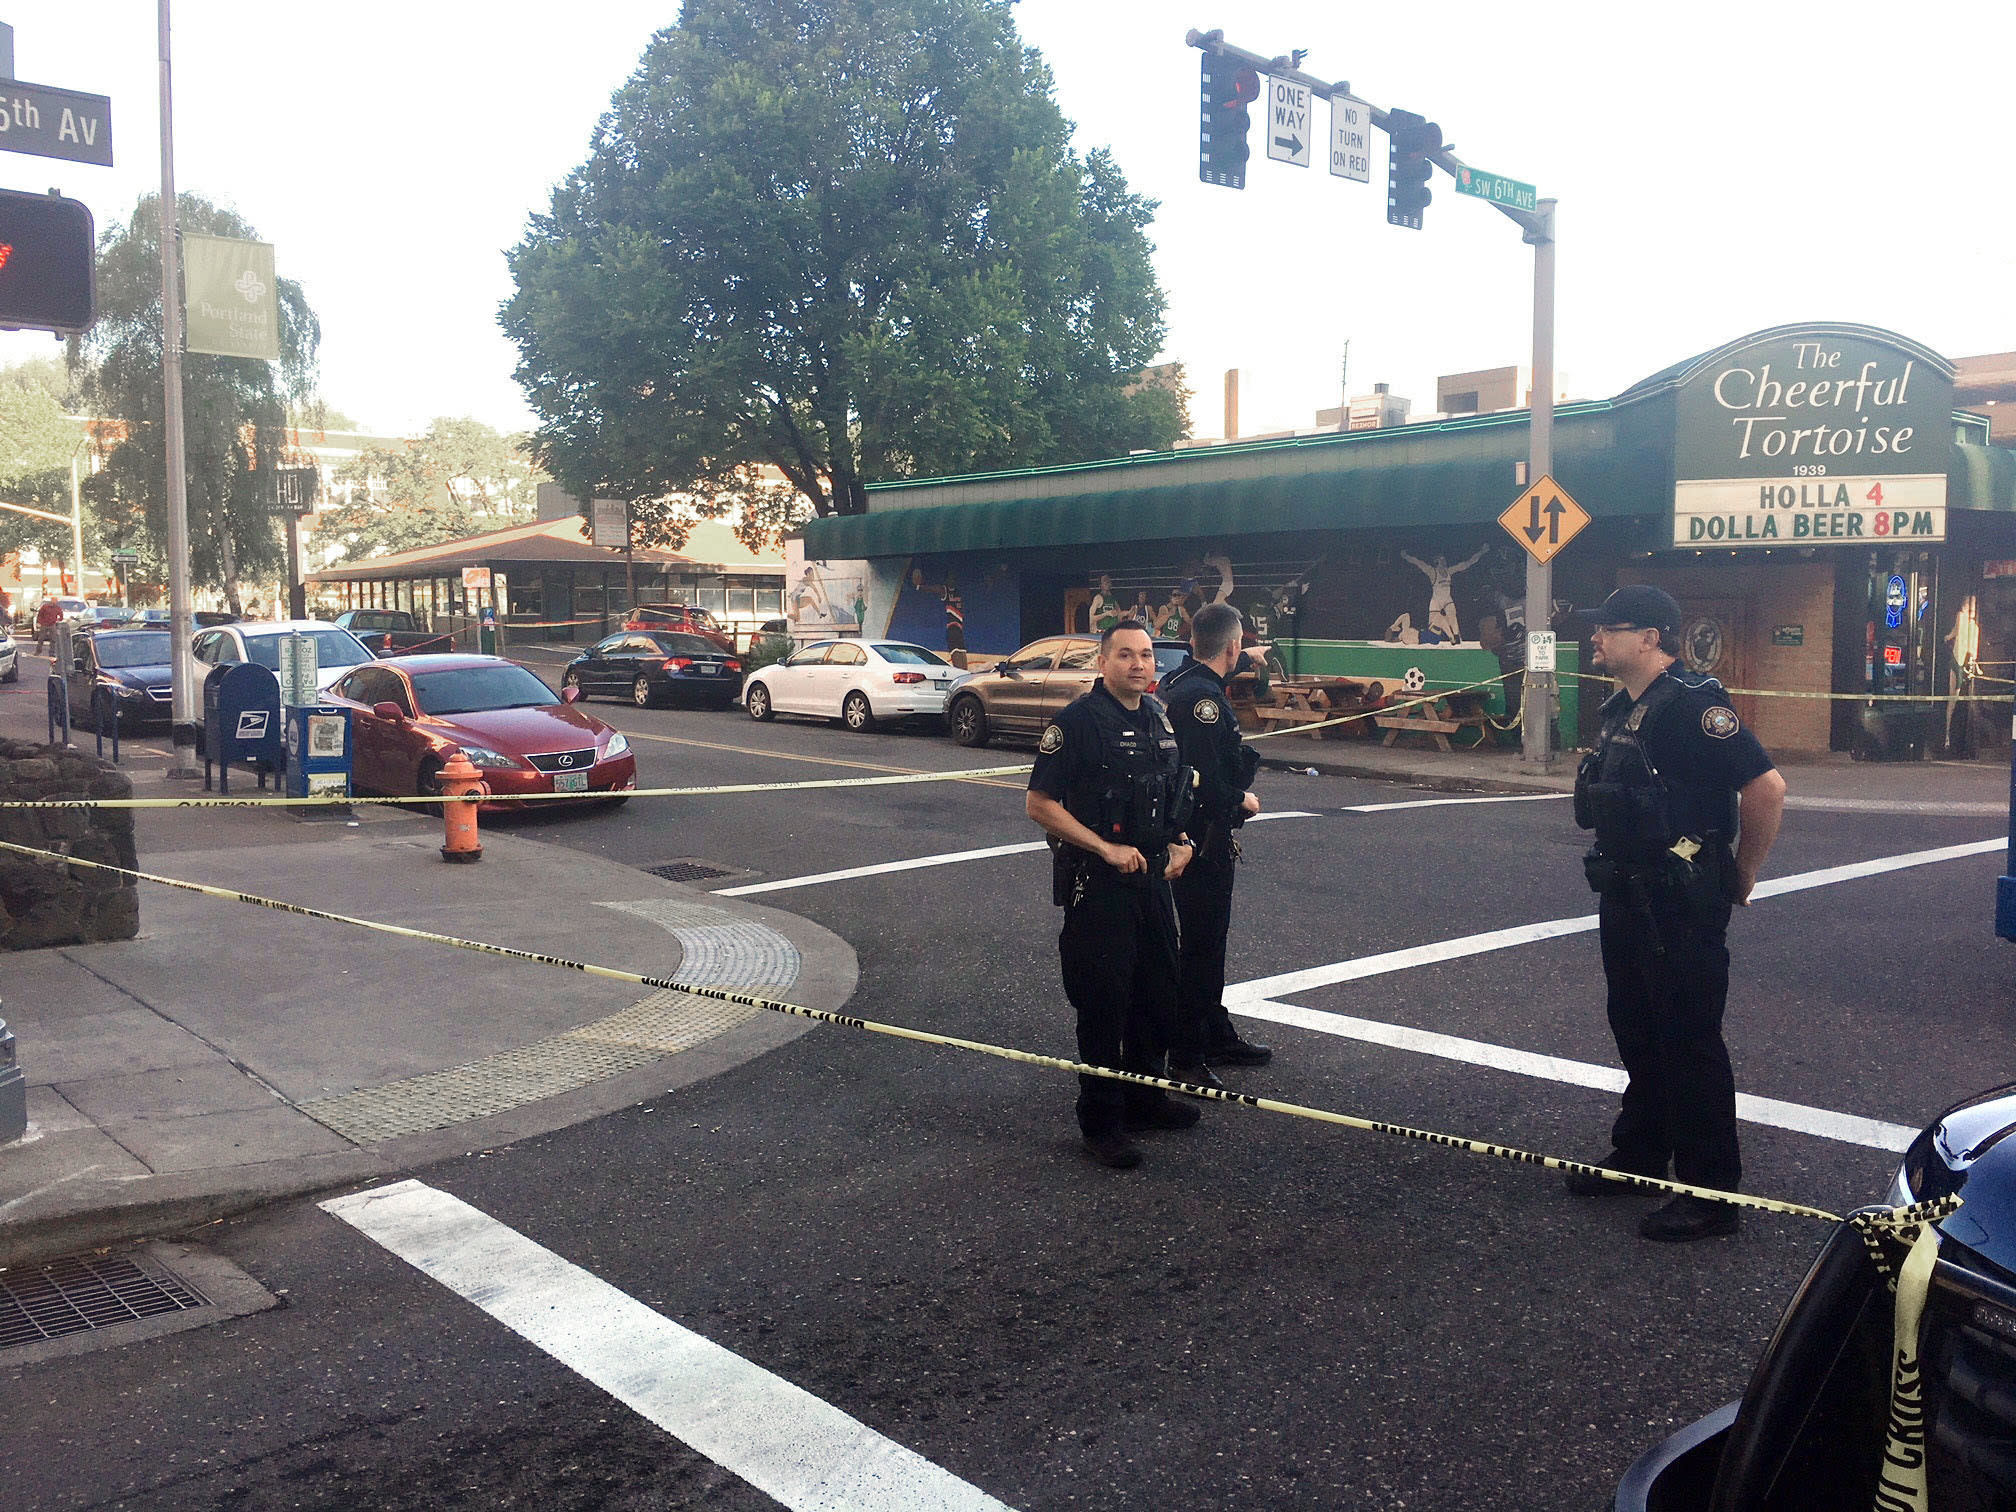 FILE - In this June 29, 2018, file photo, police stand outside across from The Cheerful Tortoise bar at the scene of an earlier shooting in Portland, Ore. Portland State University said Thursday, Aug. 13, 2020, it will disarm its campus police force more than two years after officers from the department shot and killed a Black man who was trying to break up a fight. (Shane Dixon/The Oregonian via AP, File)